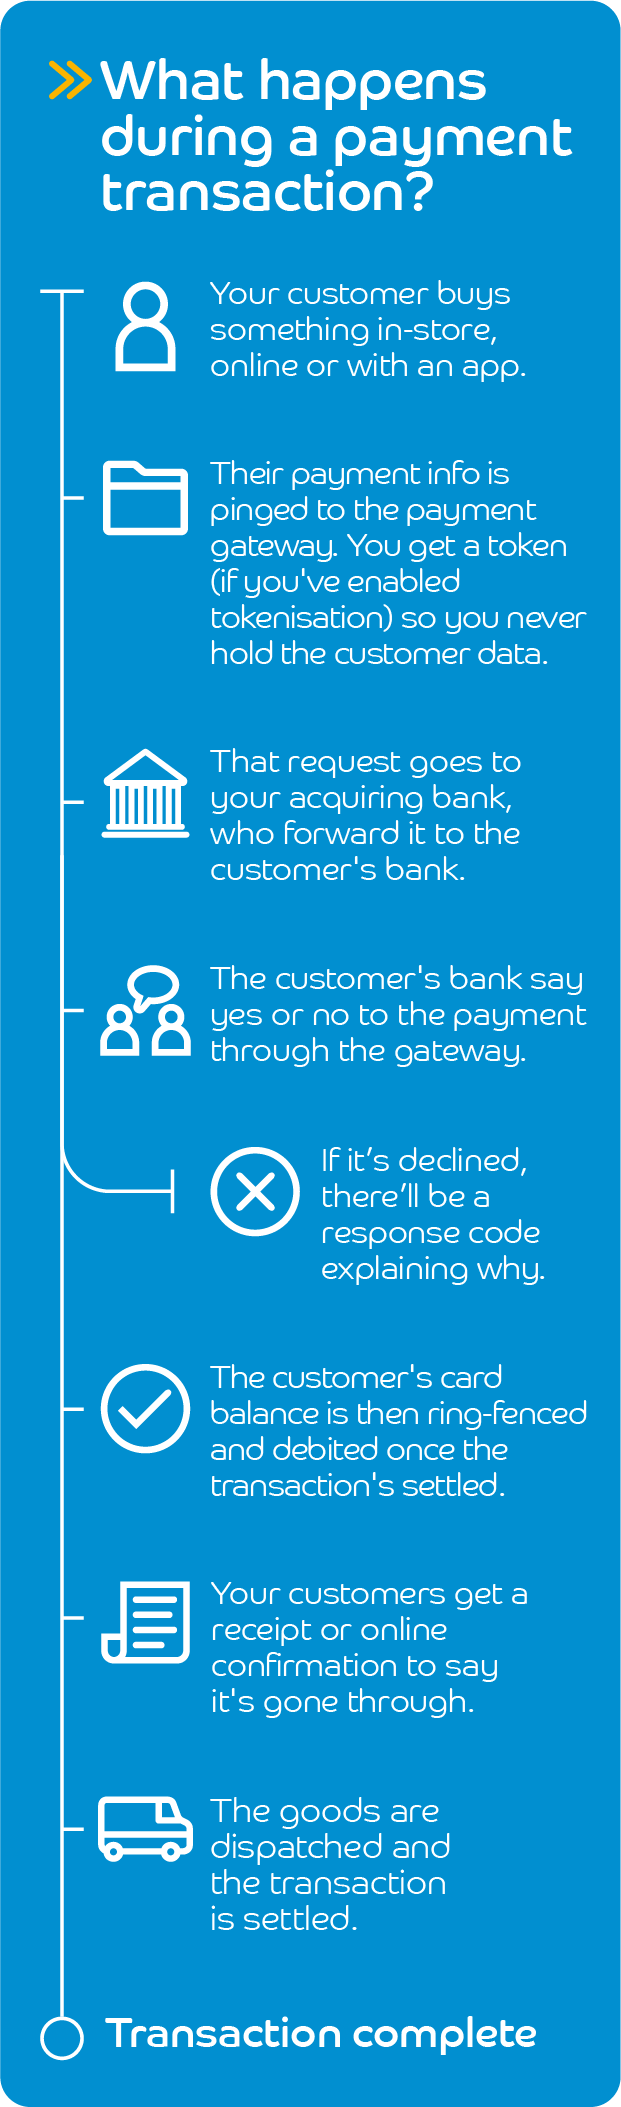 Infographic - What happens during a payment transaction?